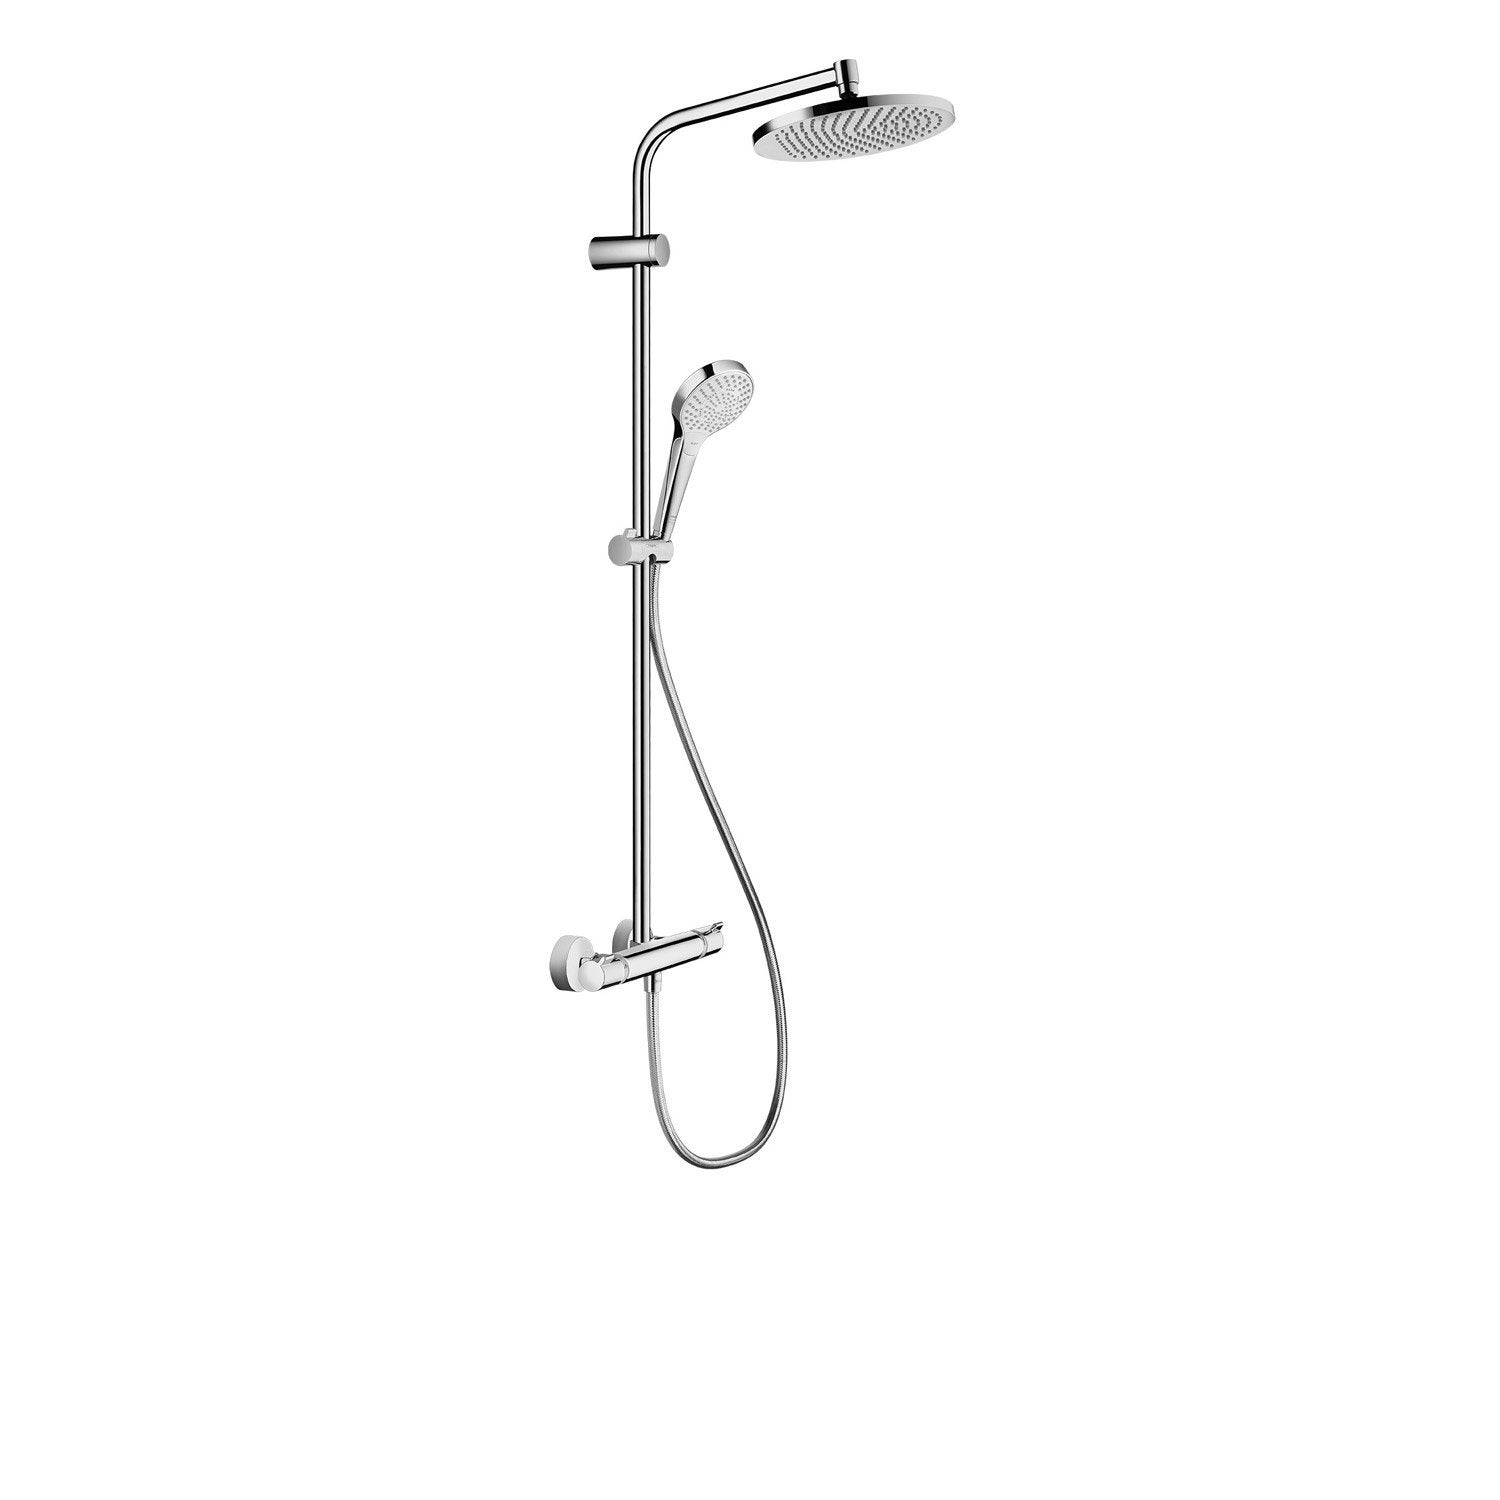 colonne de douche avec robinetterie hansgrohe lmh s 240 showerpipe leroy merlin. Black Bedroom Furniture Sets. Home Design Ideas